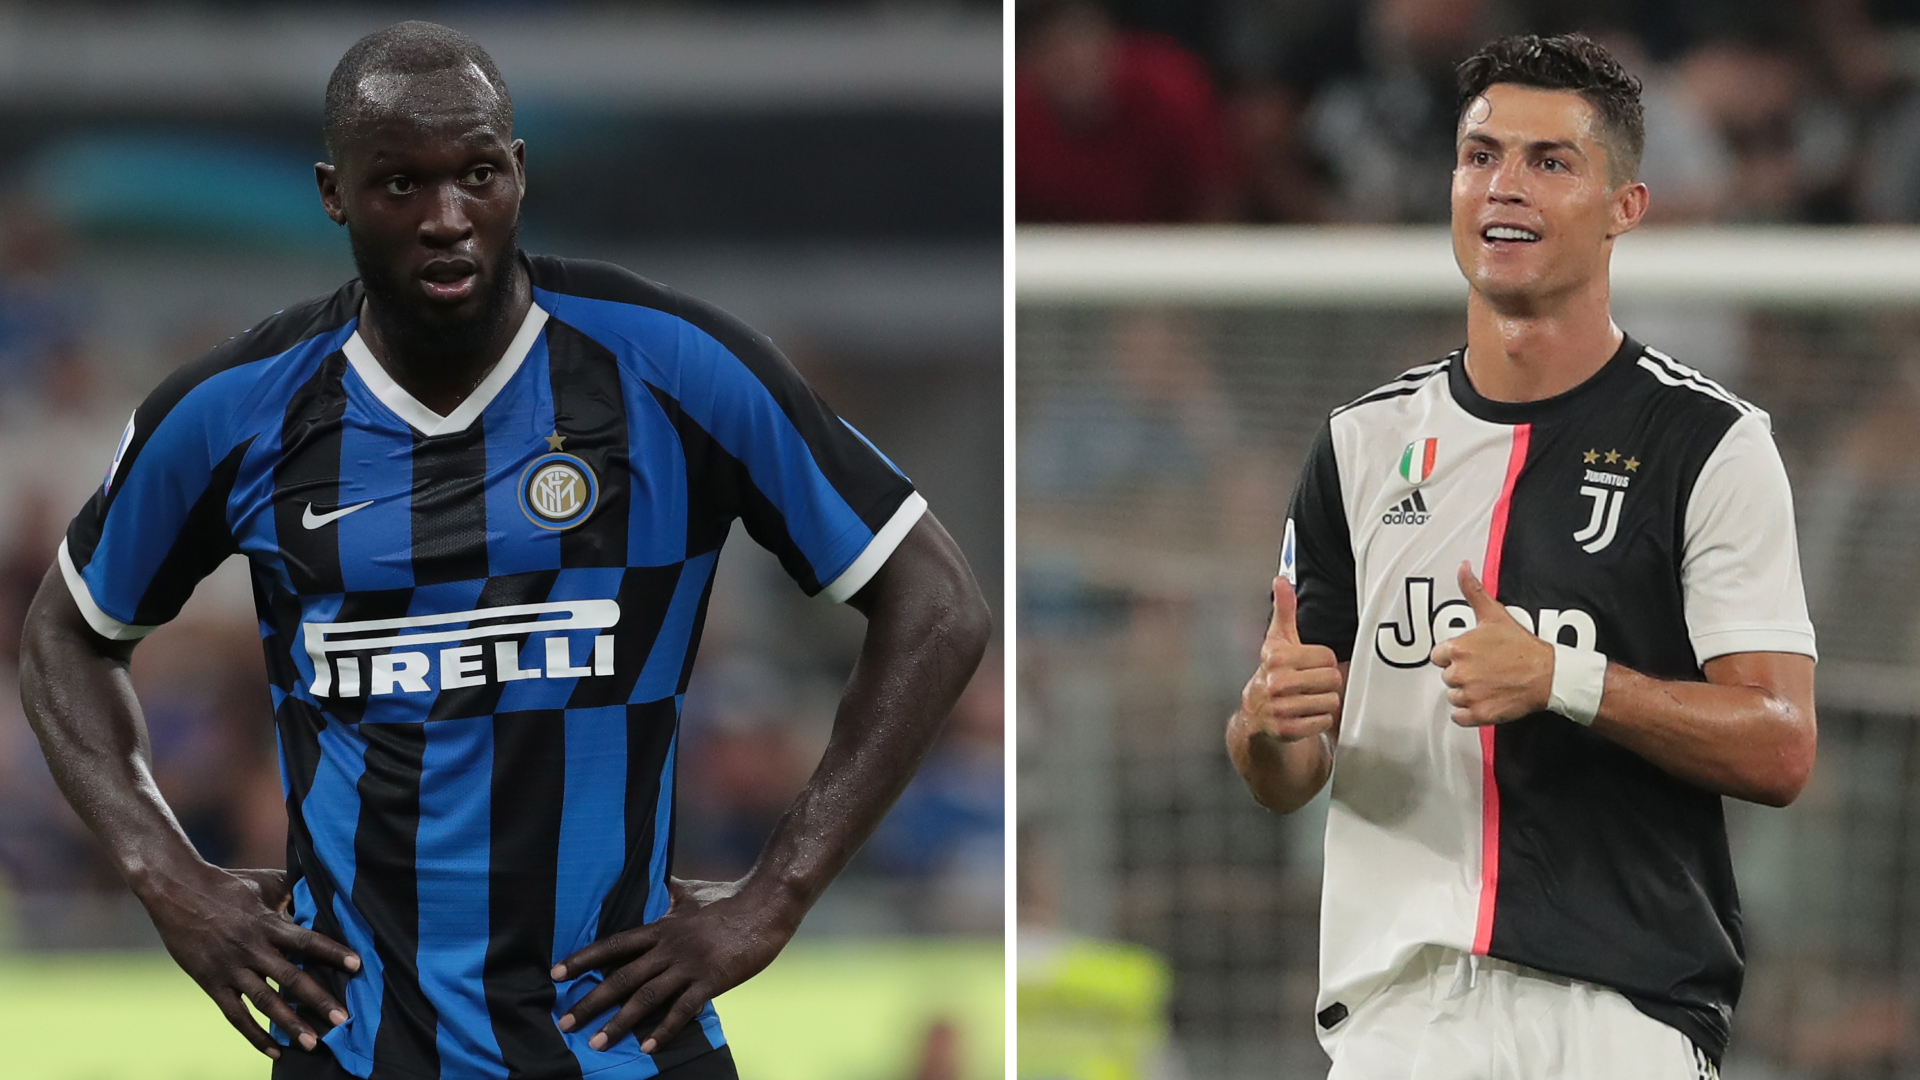 'Lukaku can easily beat Ronaldo' - Van der Meyde backs Belgian to outscore Juventus star